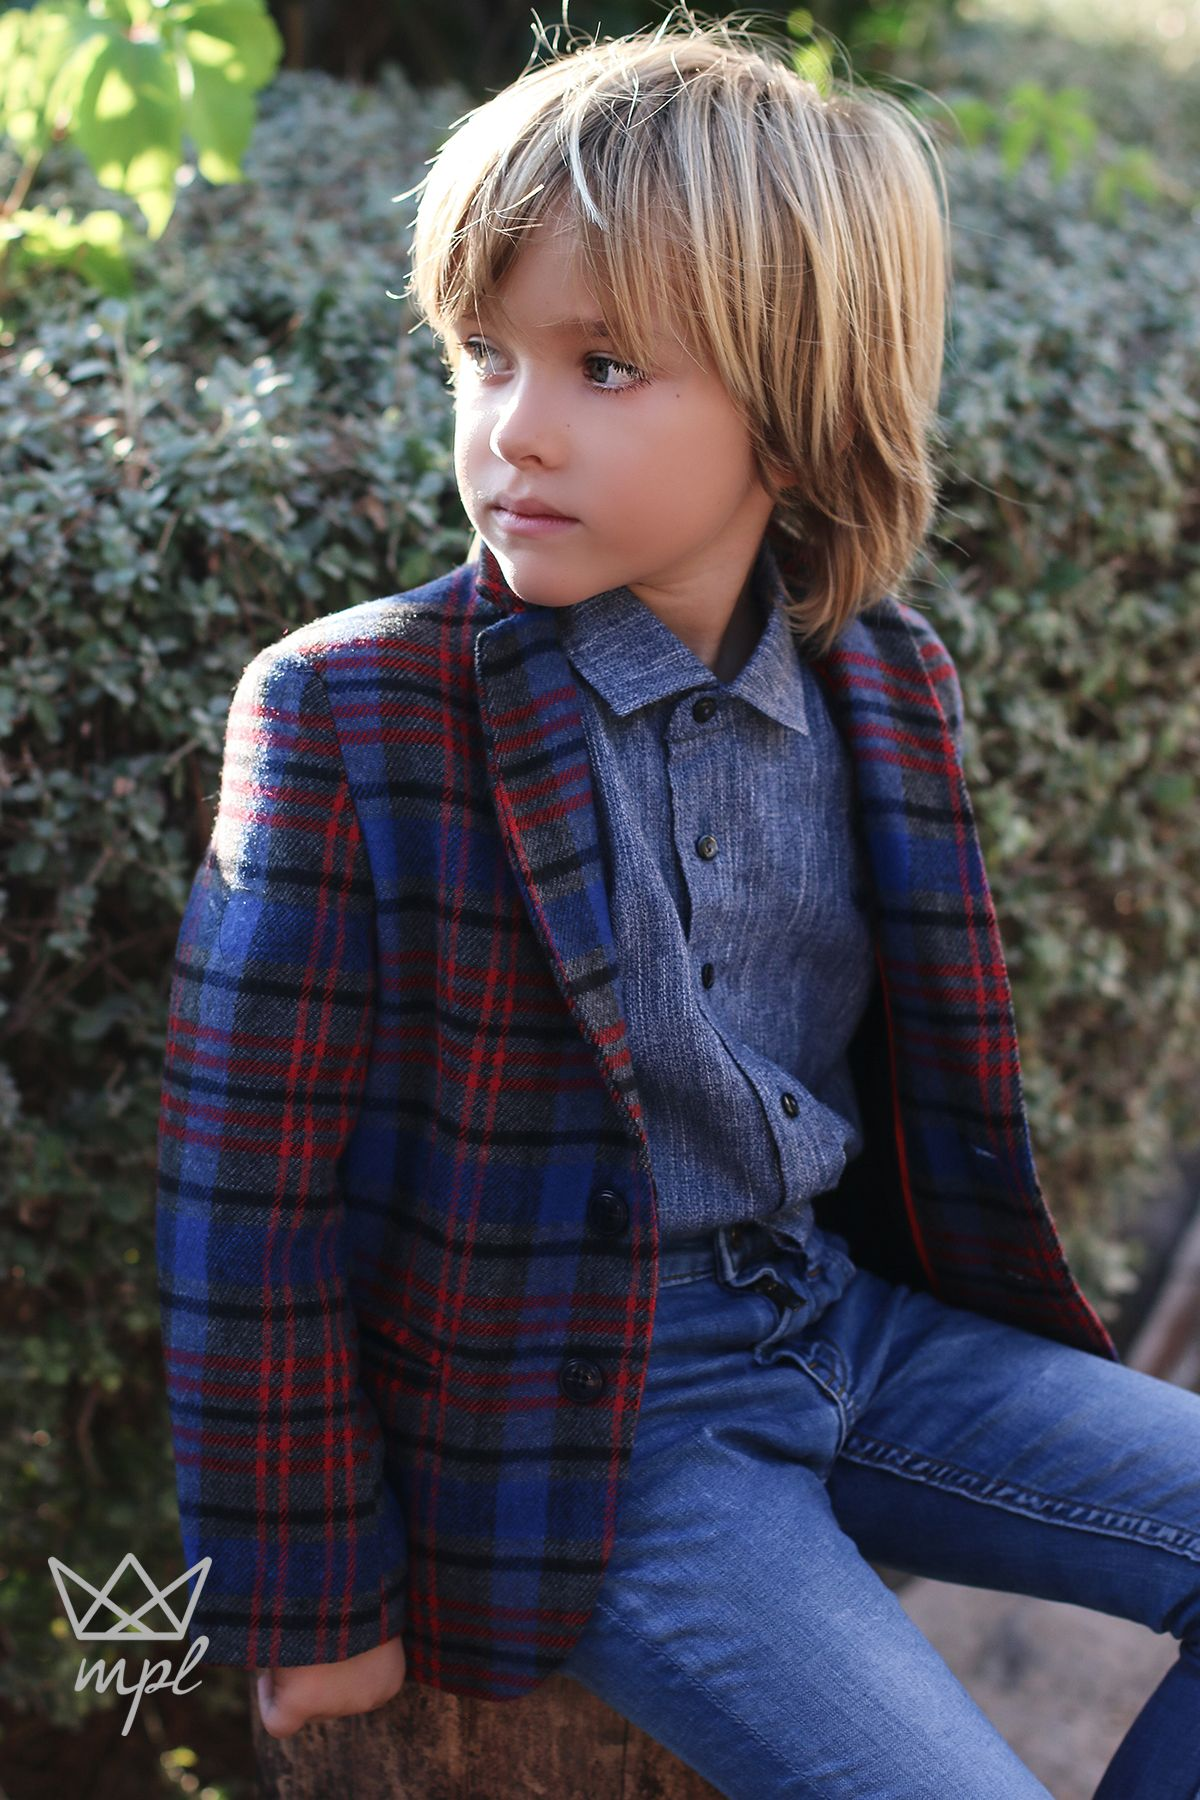 pin by elect lady on #kid smart!! in 2019 | toddler boy